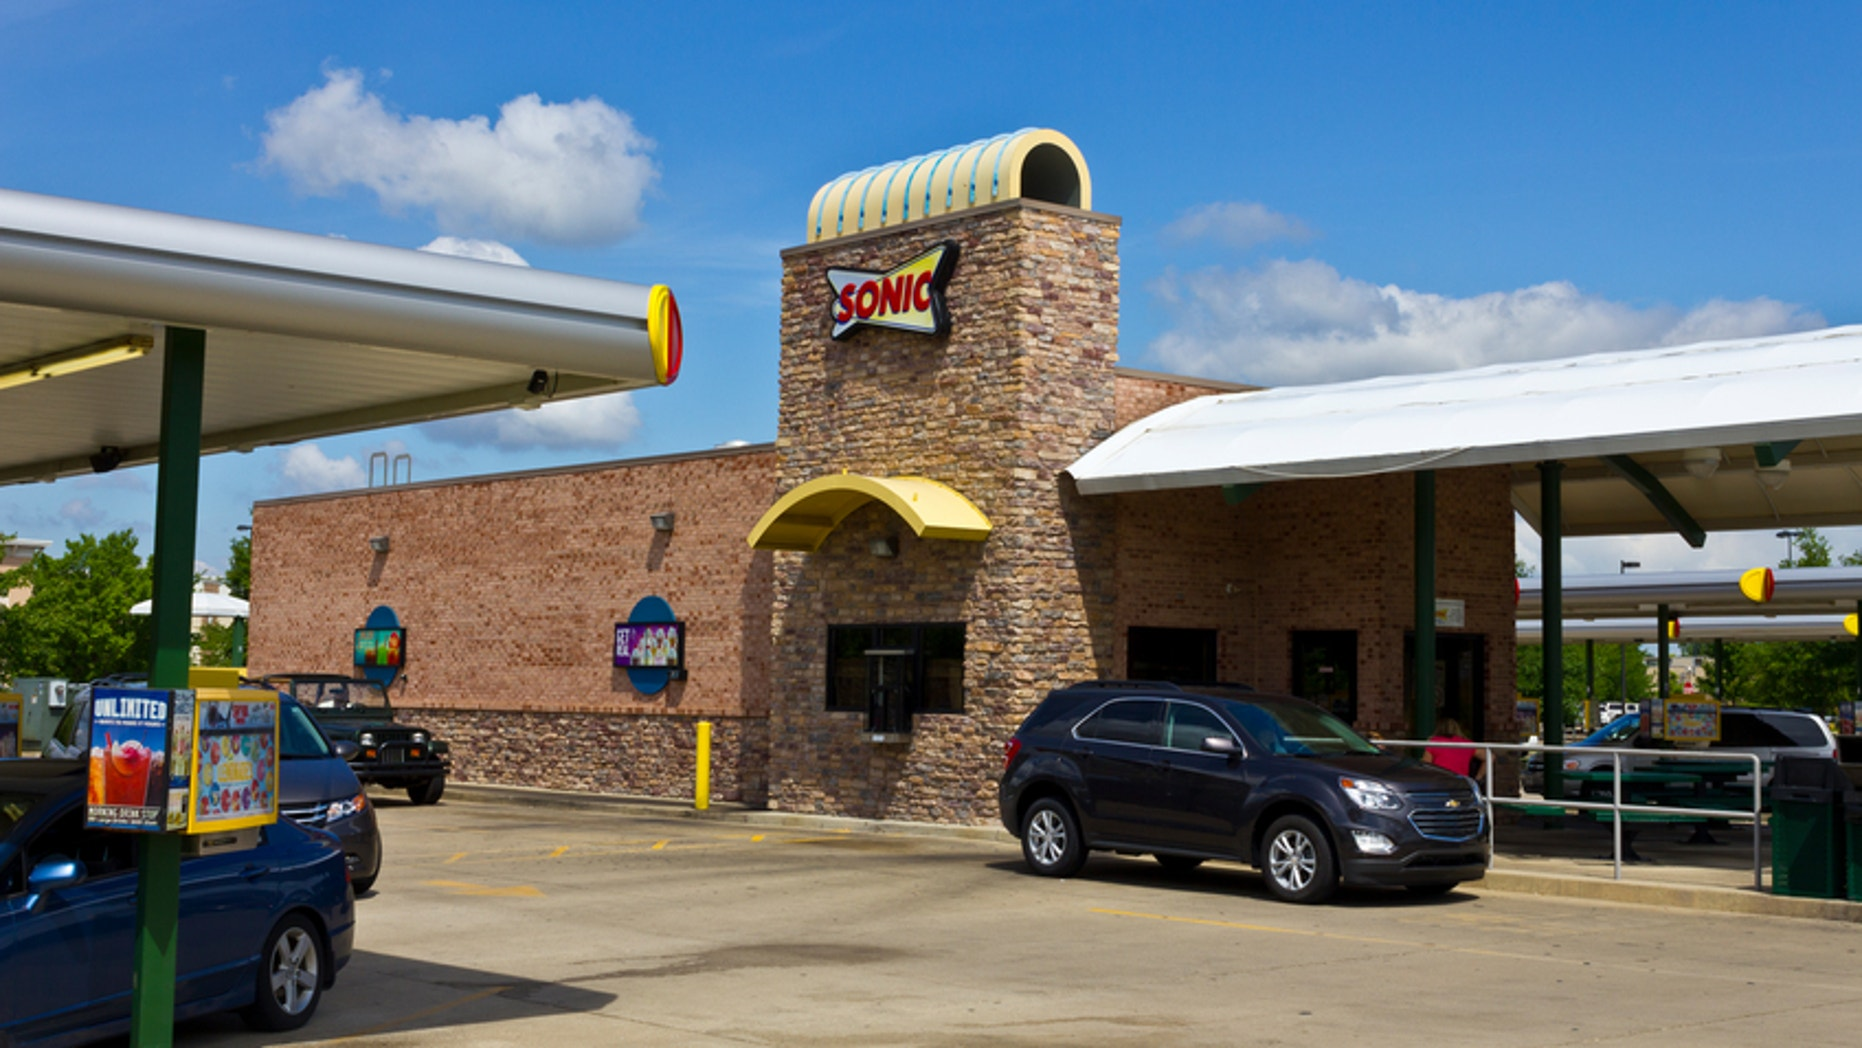 A Sonic drive-in worker was fired for racist receipt remarks.